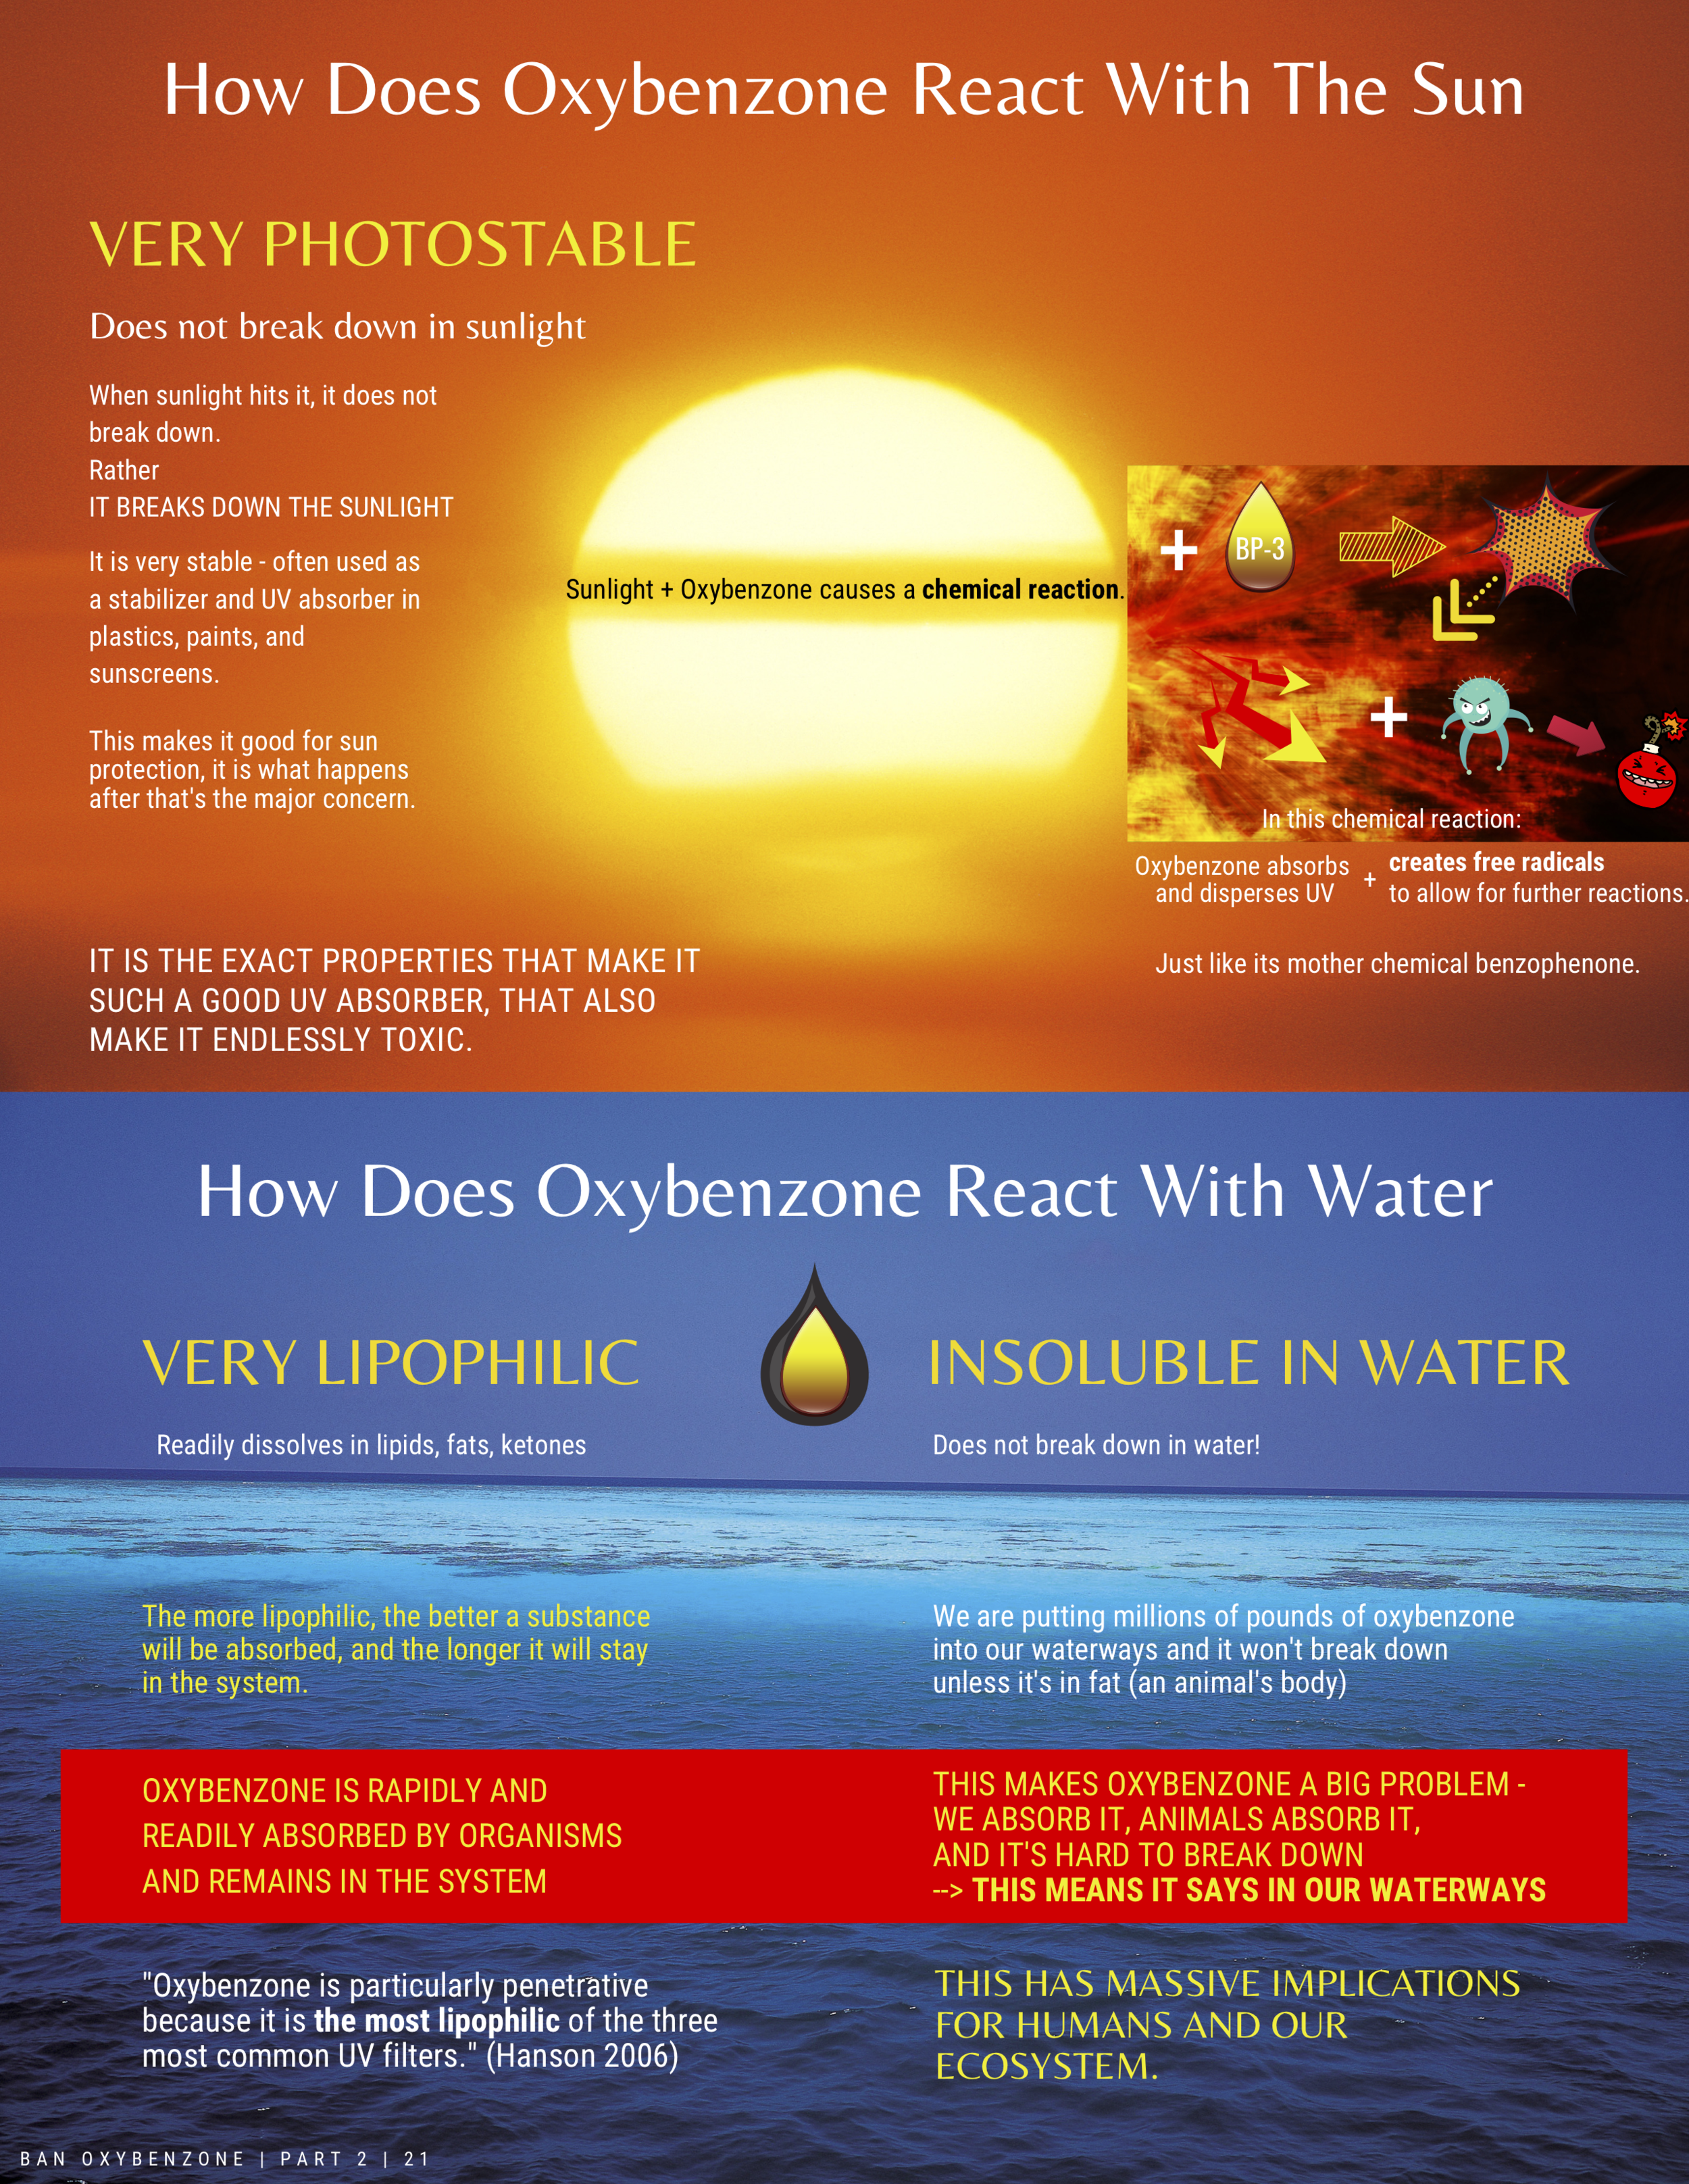 ban-oxybenzone-part-2-properties-photostable-lipophilic-21.png